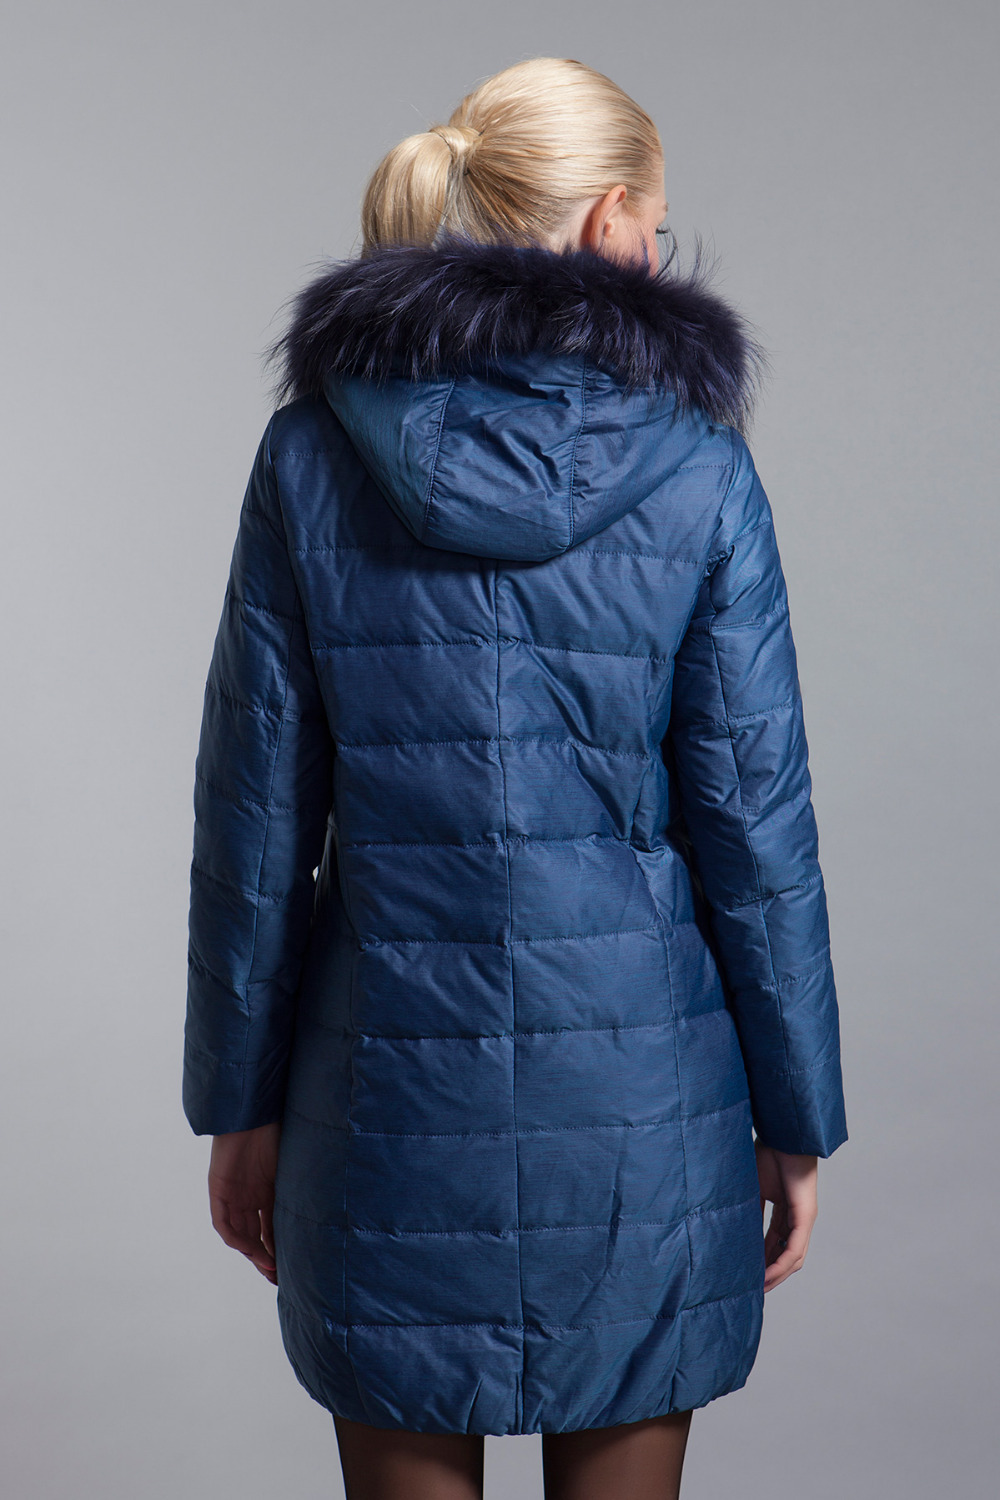 BASIC-EDITIONS new winter down jacket with fur hood White Duck Down Winter Coat Women jacket - 13W-55 Free shipping